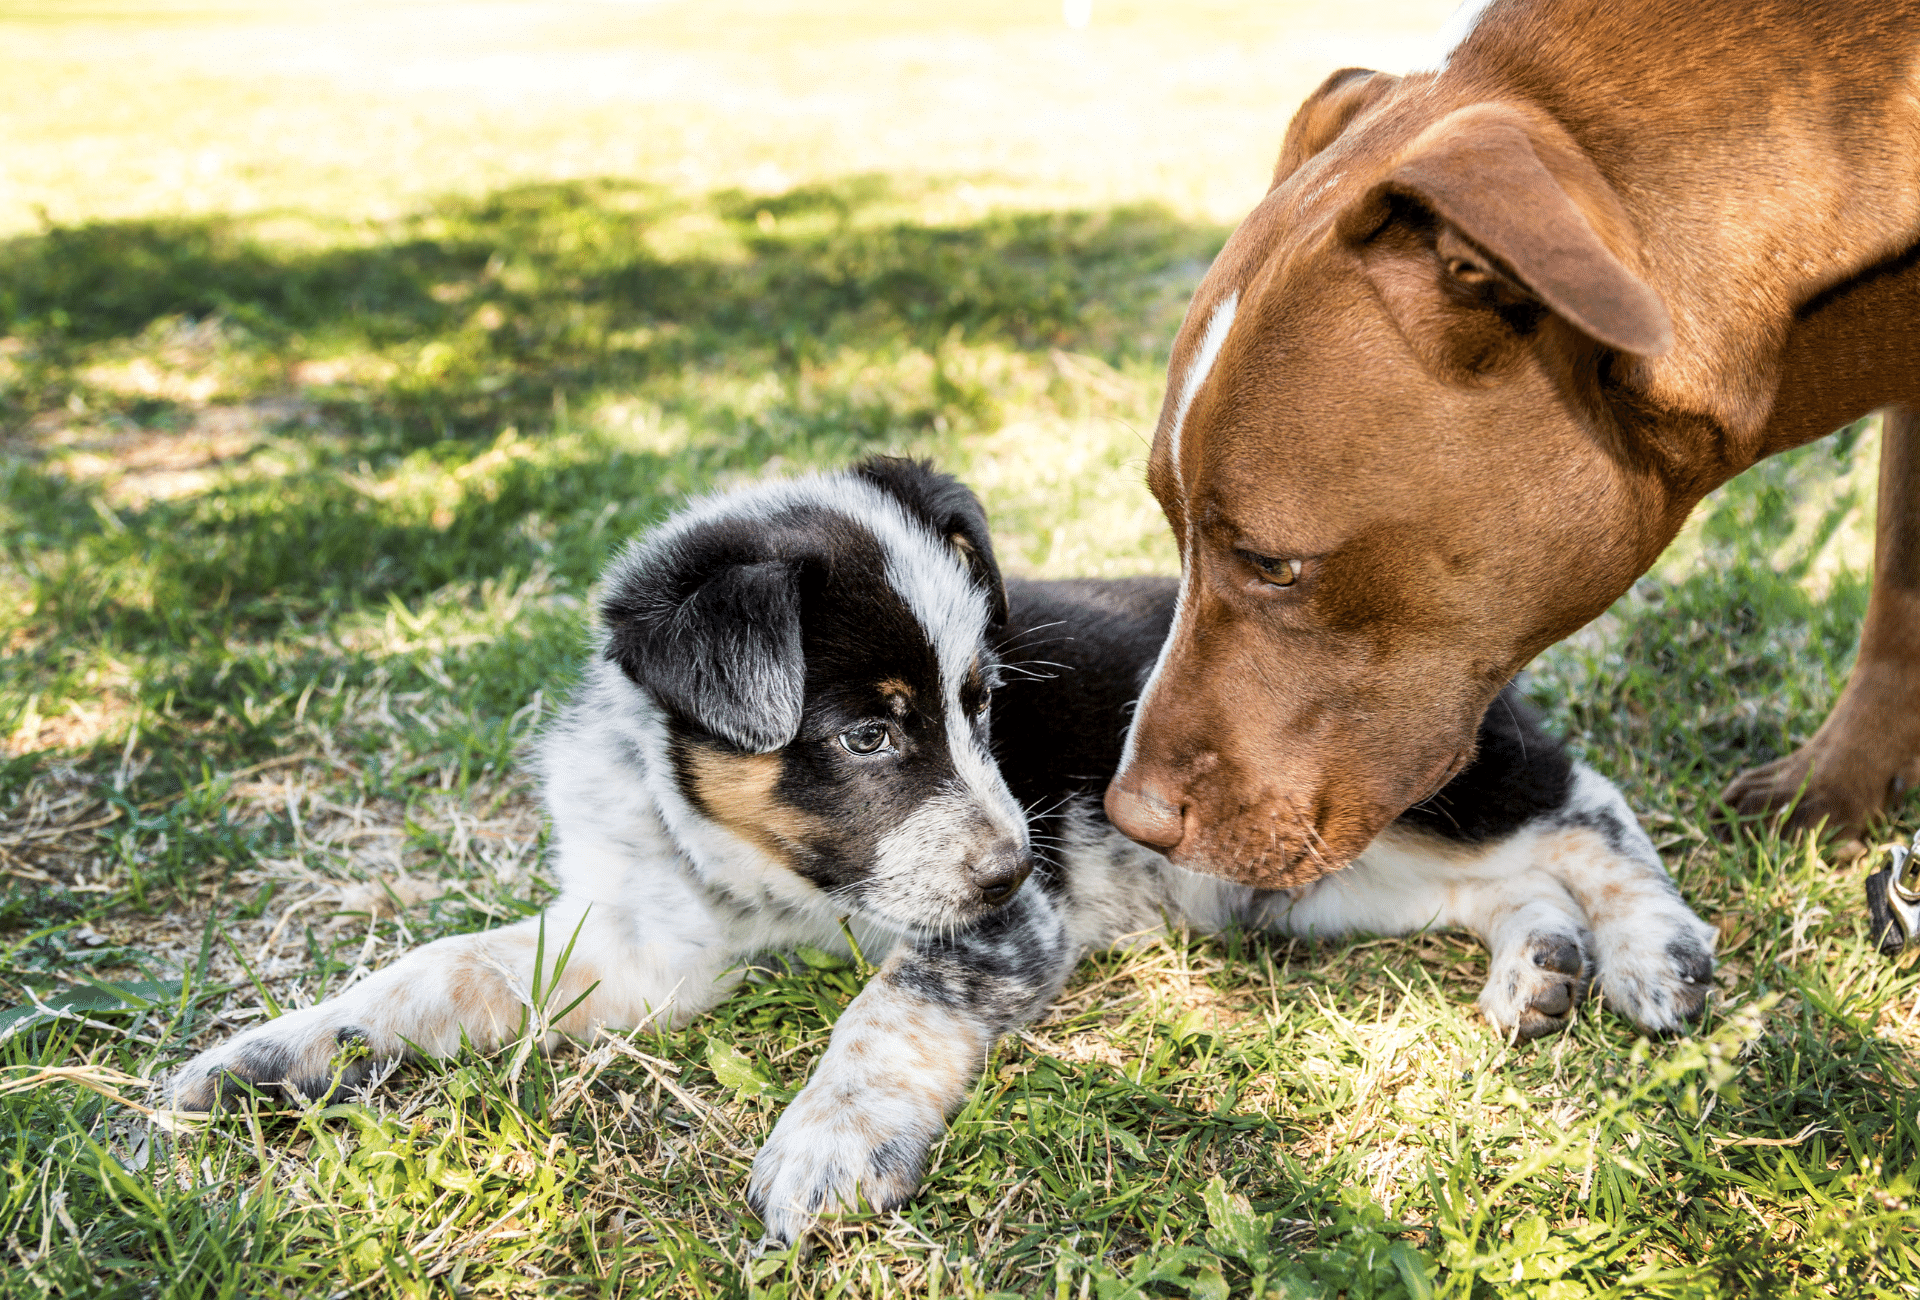 Older dog is bending down to a puppy laying on grass.